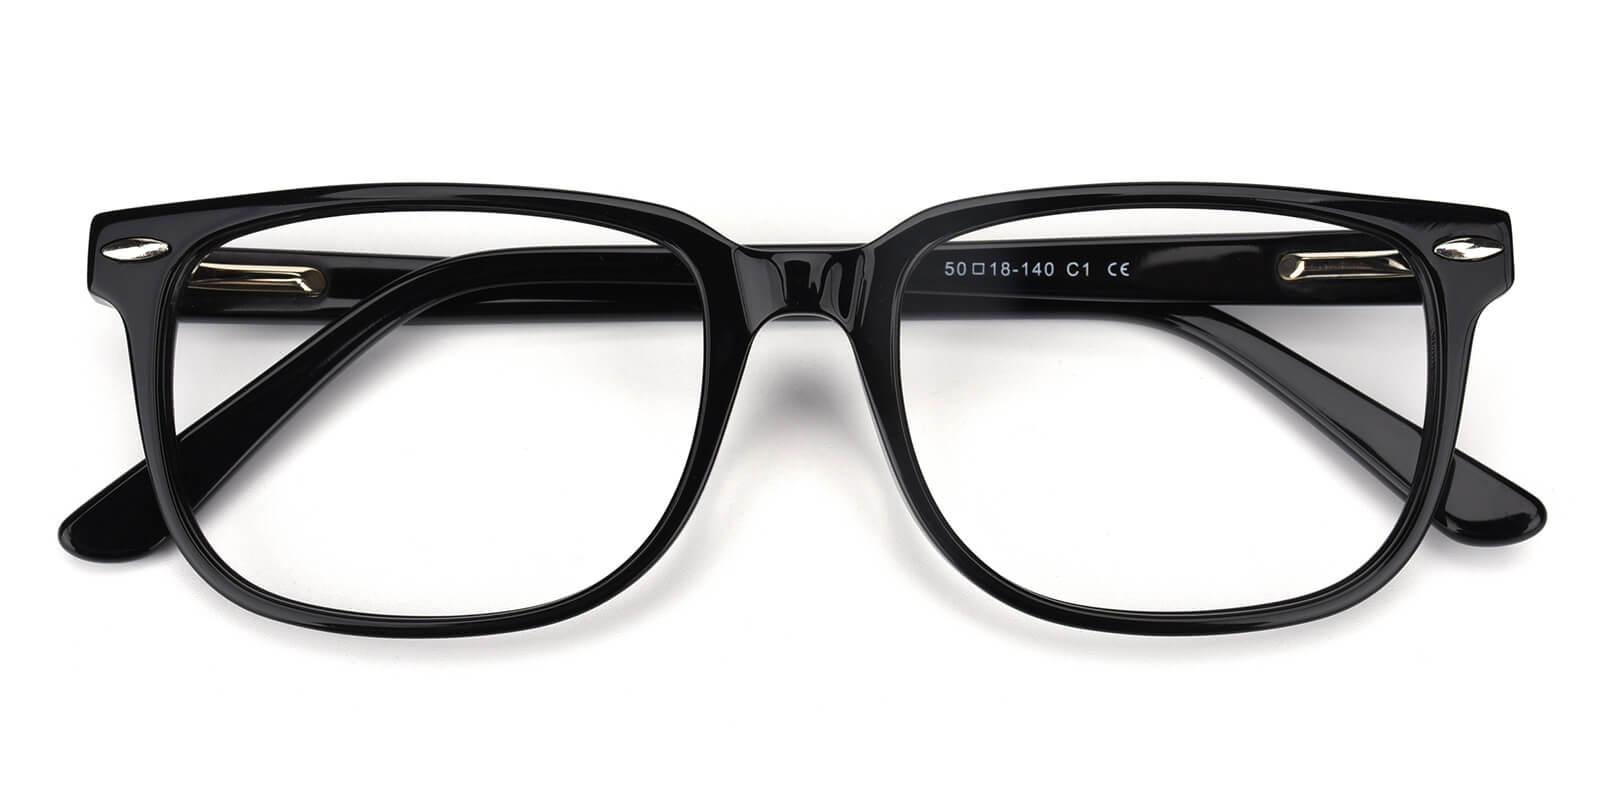 Tempiry-Black-Rectangle-Acetate-Eyeglasses-detail